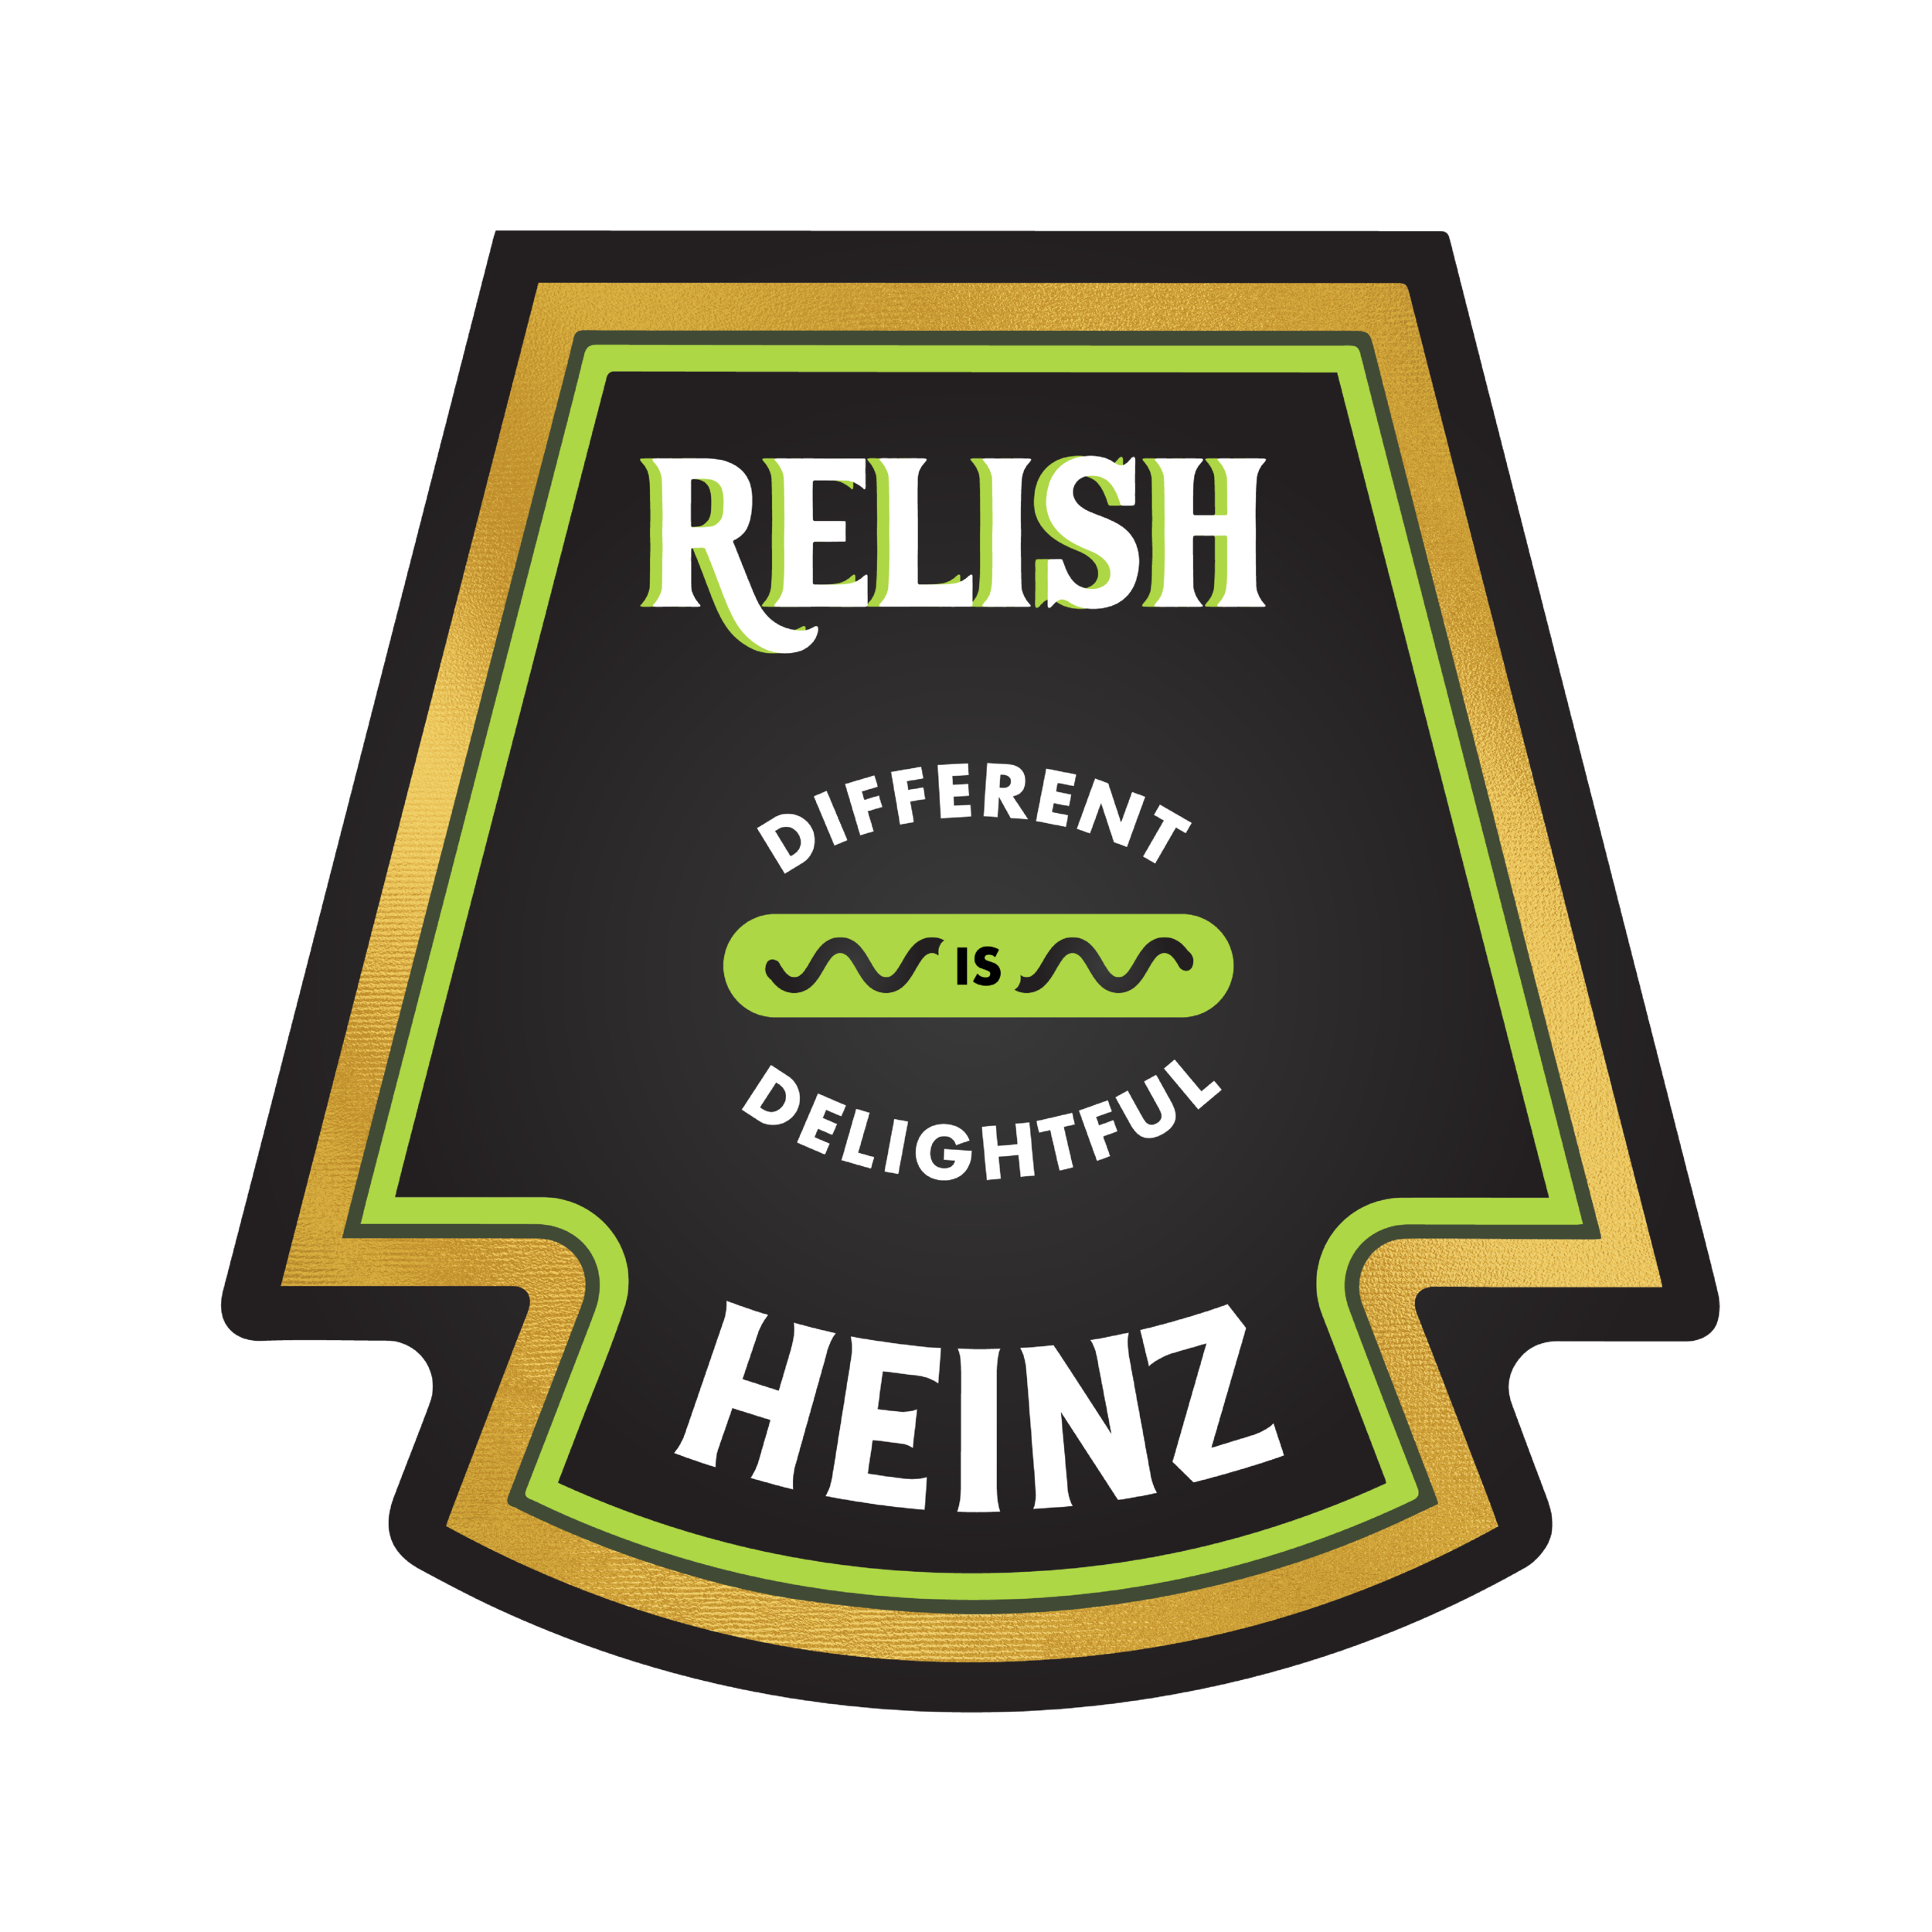 For Heinz Relish we need you to fit out, instead of fitting in